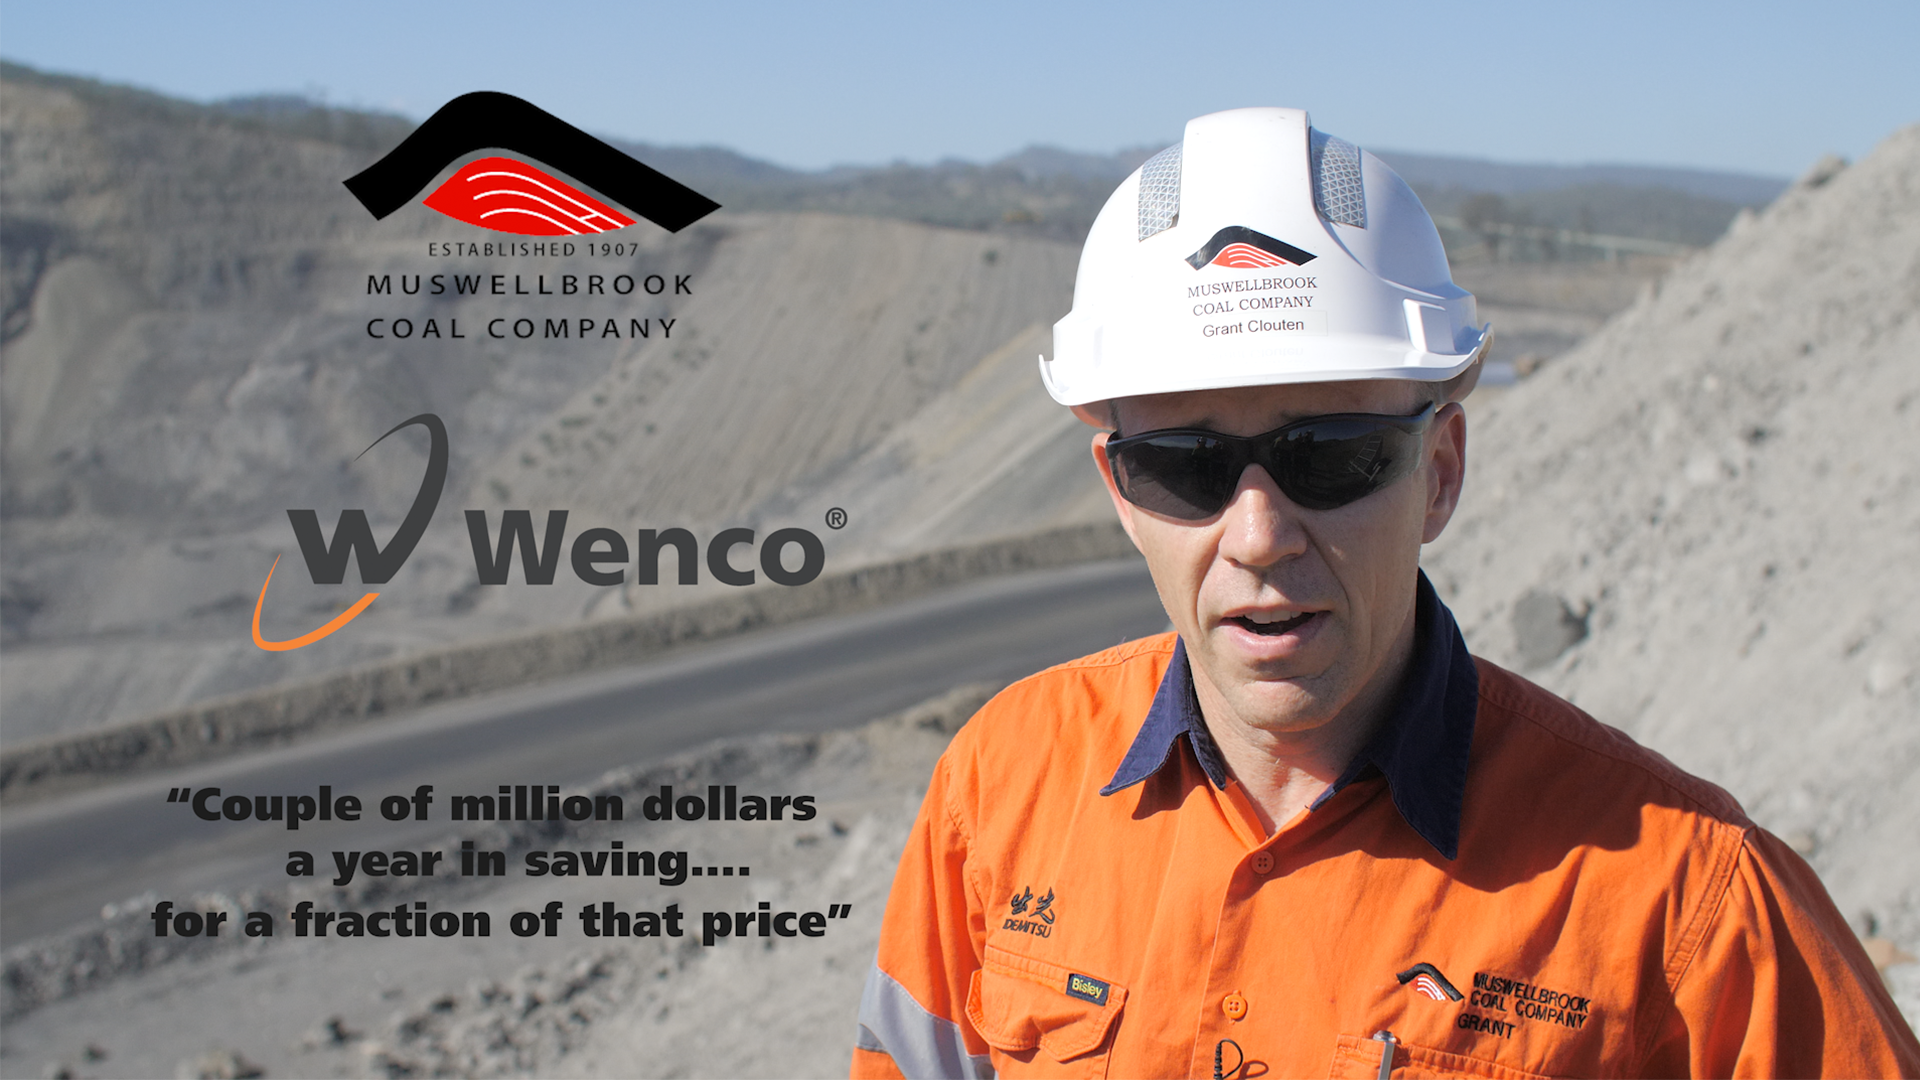 Muswellbrook Coal Saves Millions of Dollars with Wenco FMS